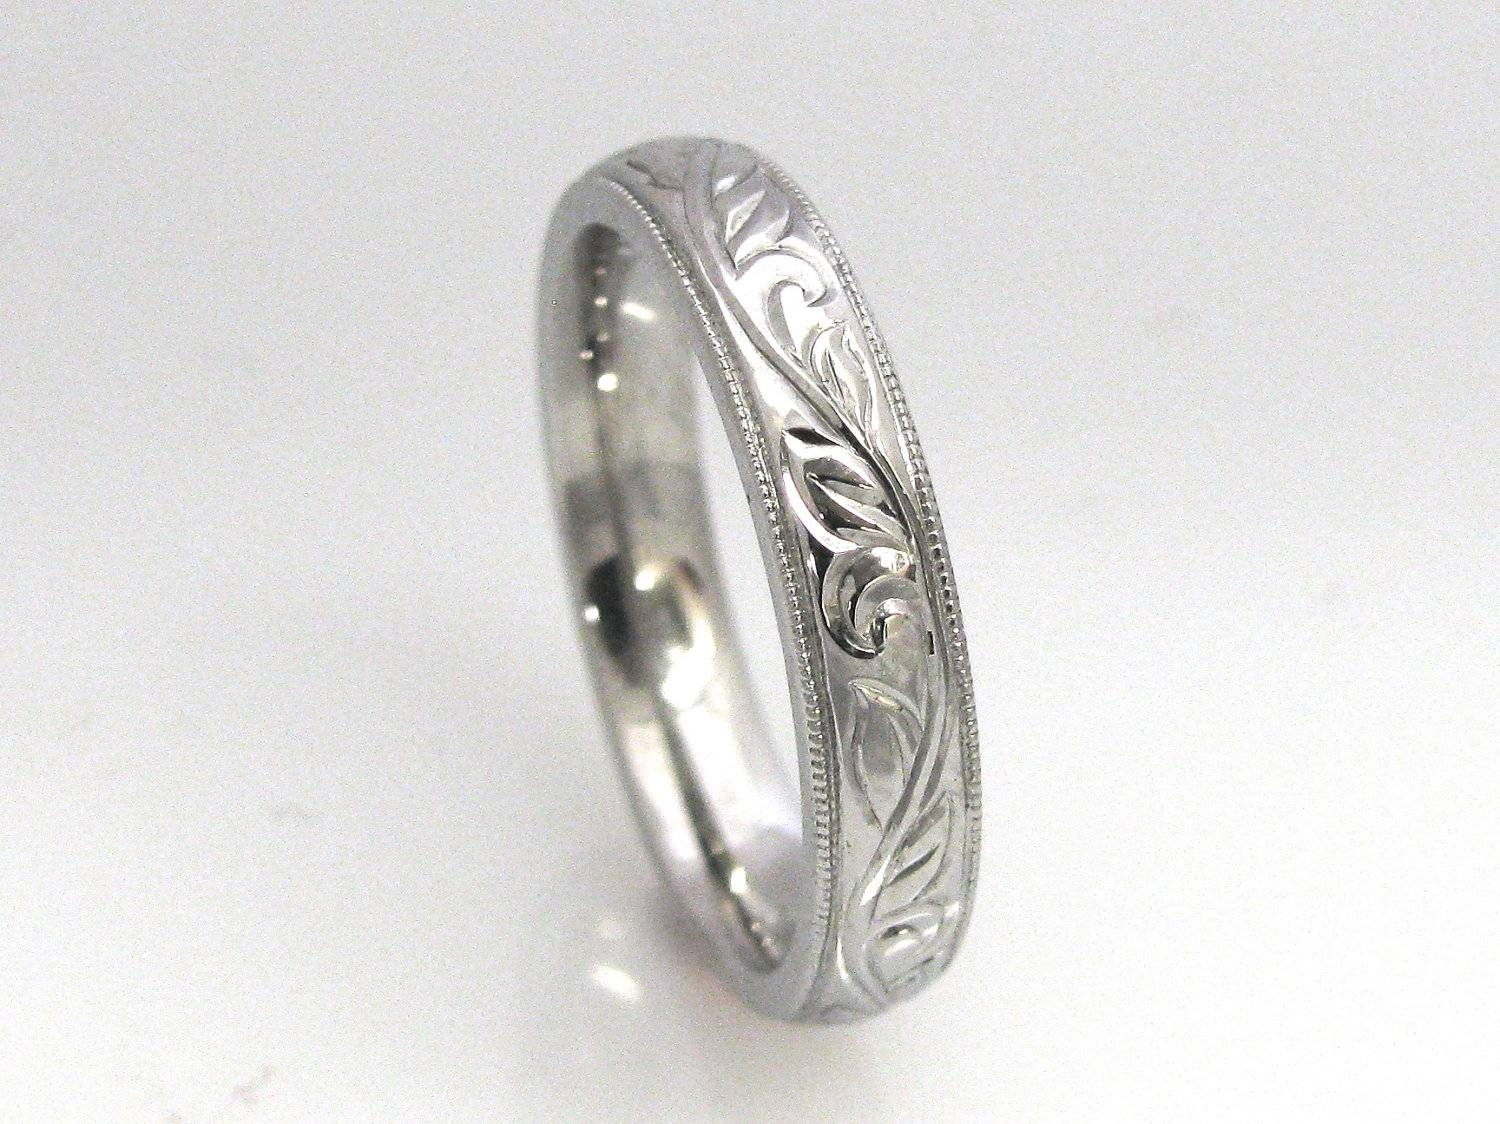 Hand Engraved Vine And Leaf With Milgrain Edge Wedding With Regard To 2018 Engraved Anniversary Rings (View 10 of 25)